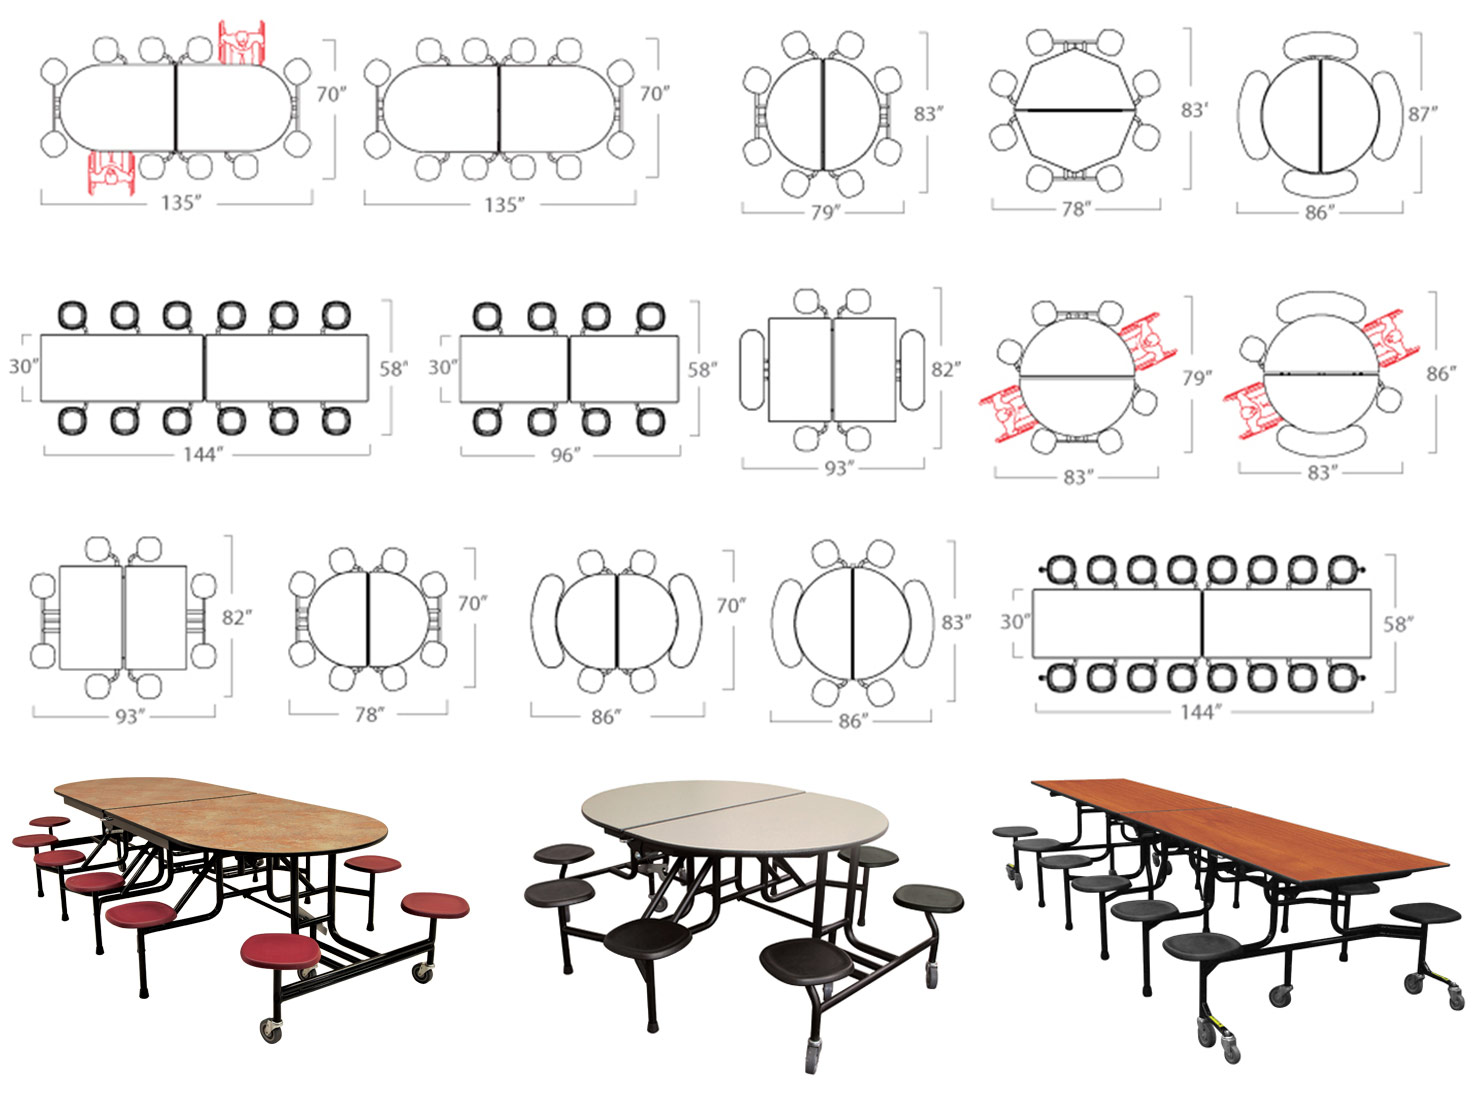 Bench clipart lunch table Benefits stools of Cafeteria with